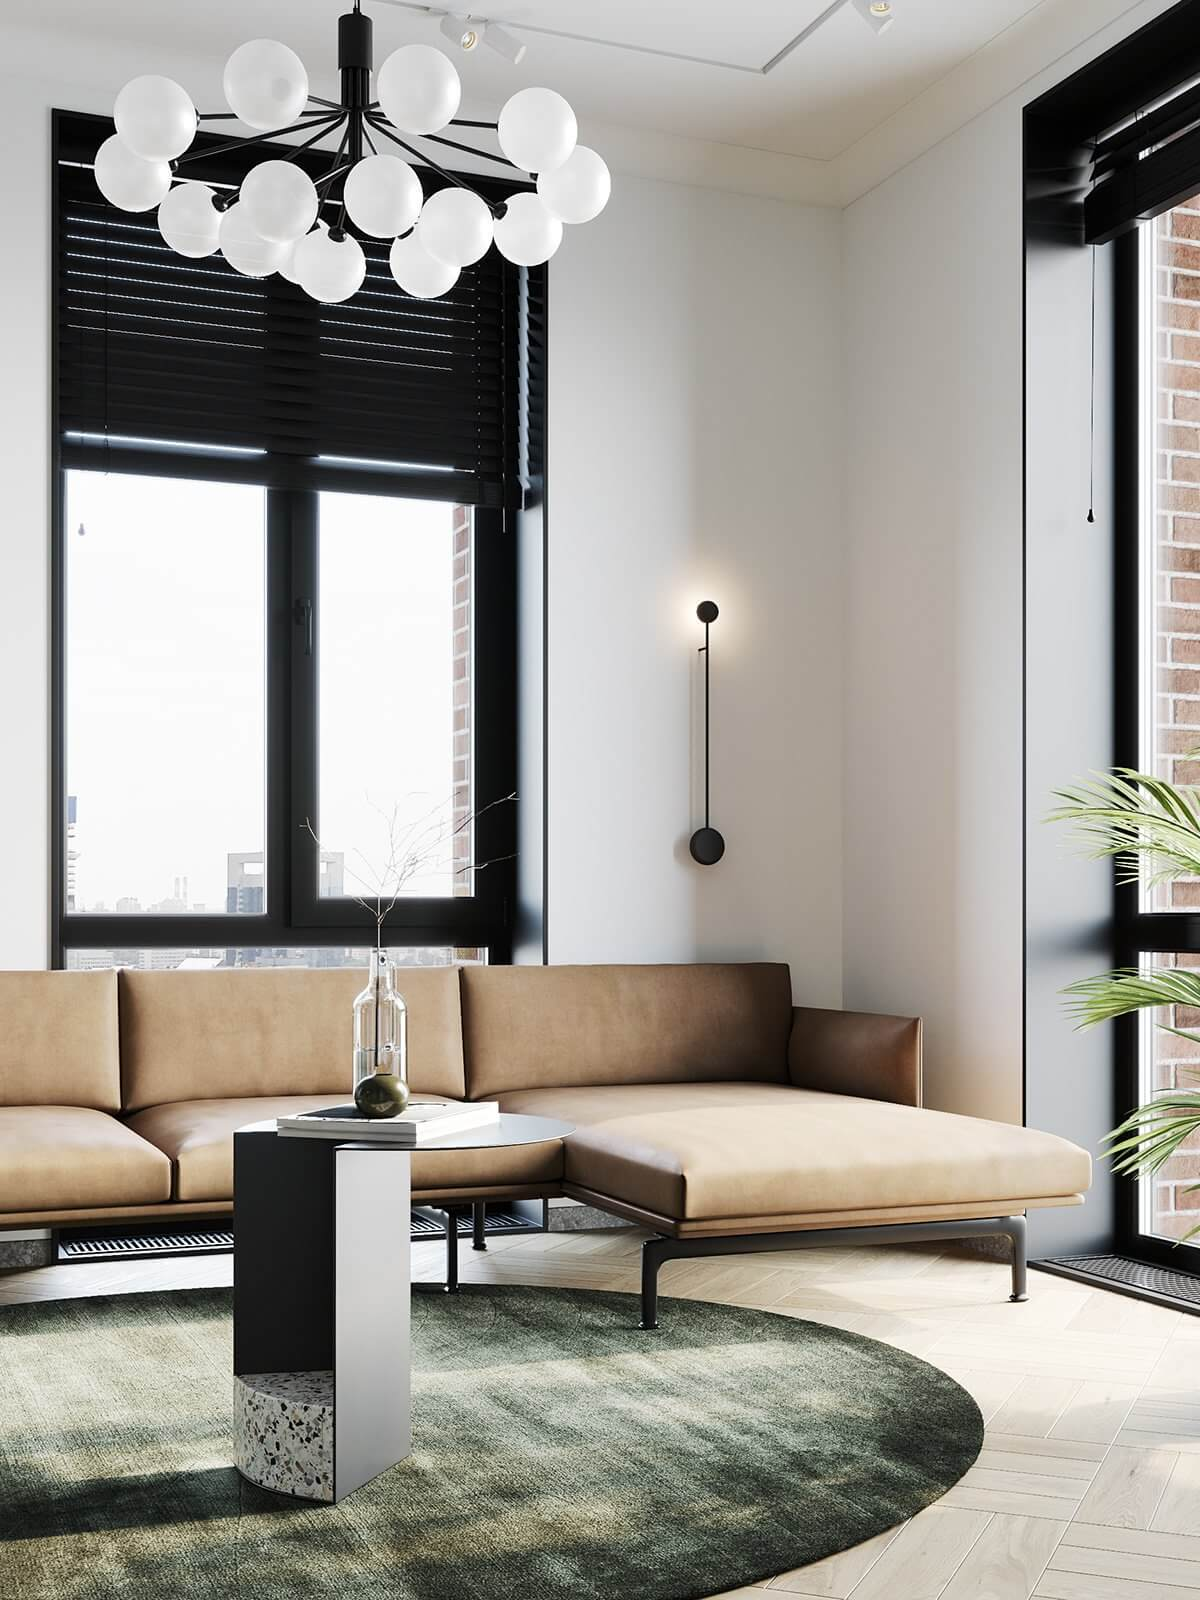 Apartment Presnya City Moscow living room leather couch side table pendant lamp - cgi visualization